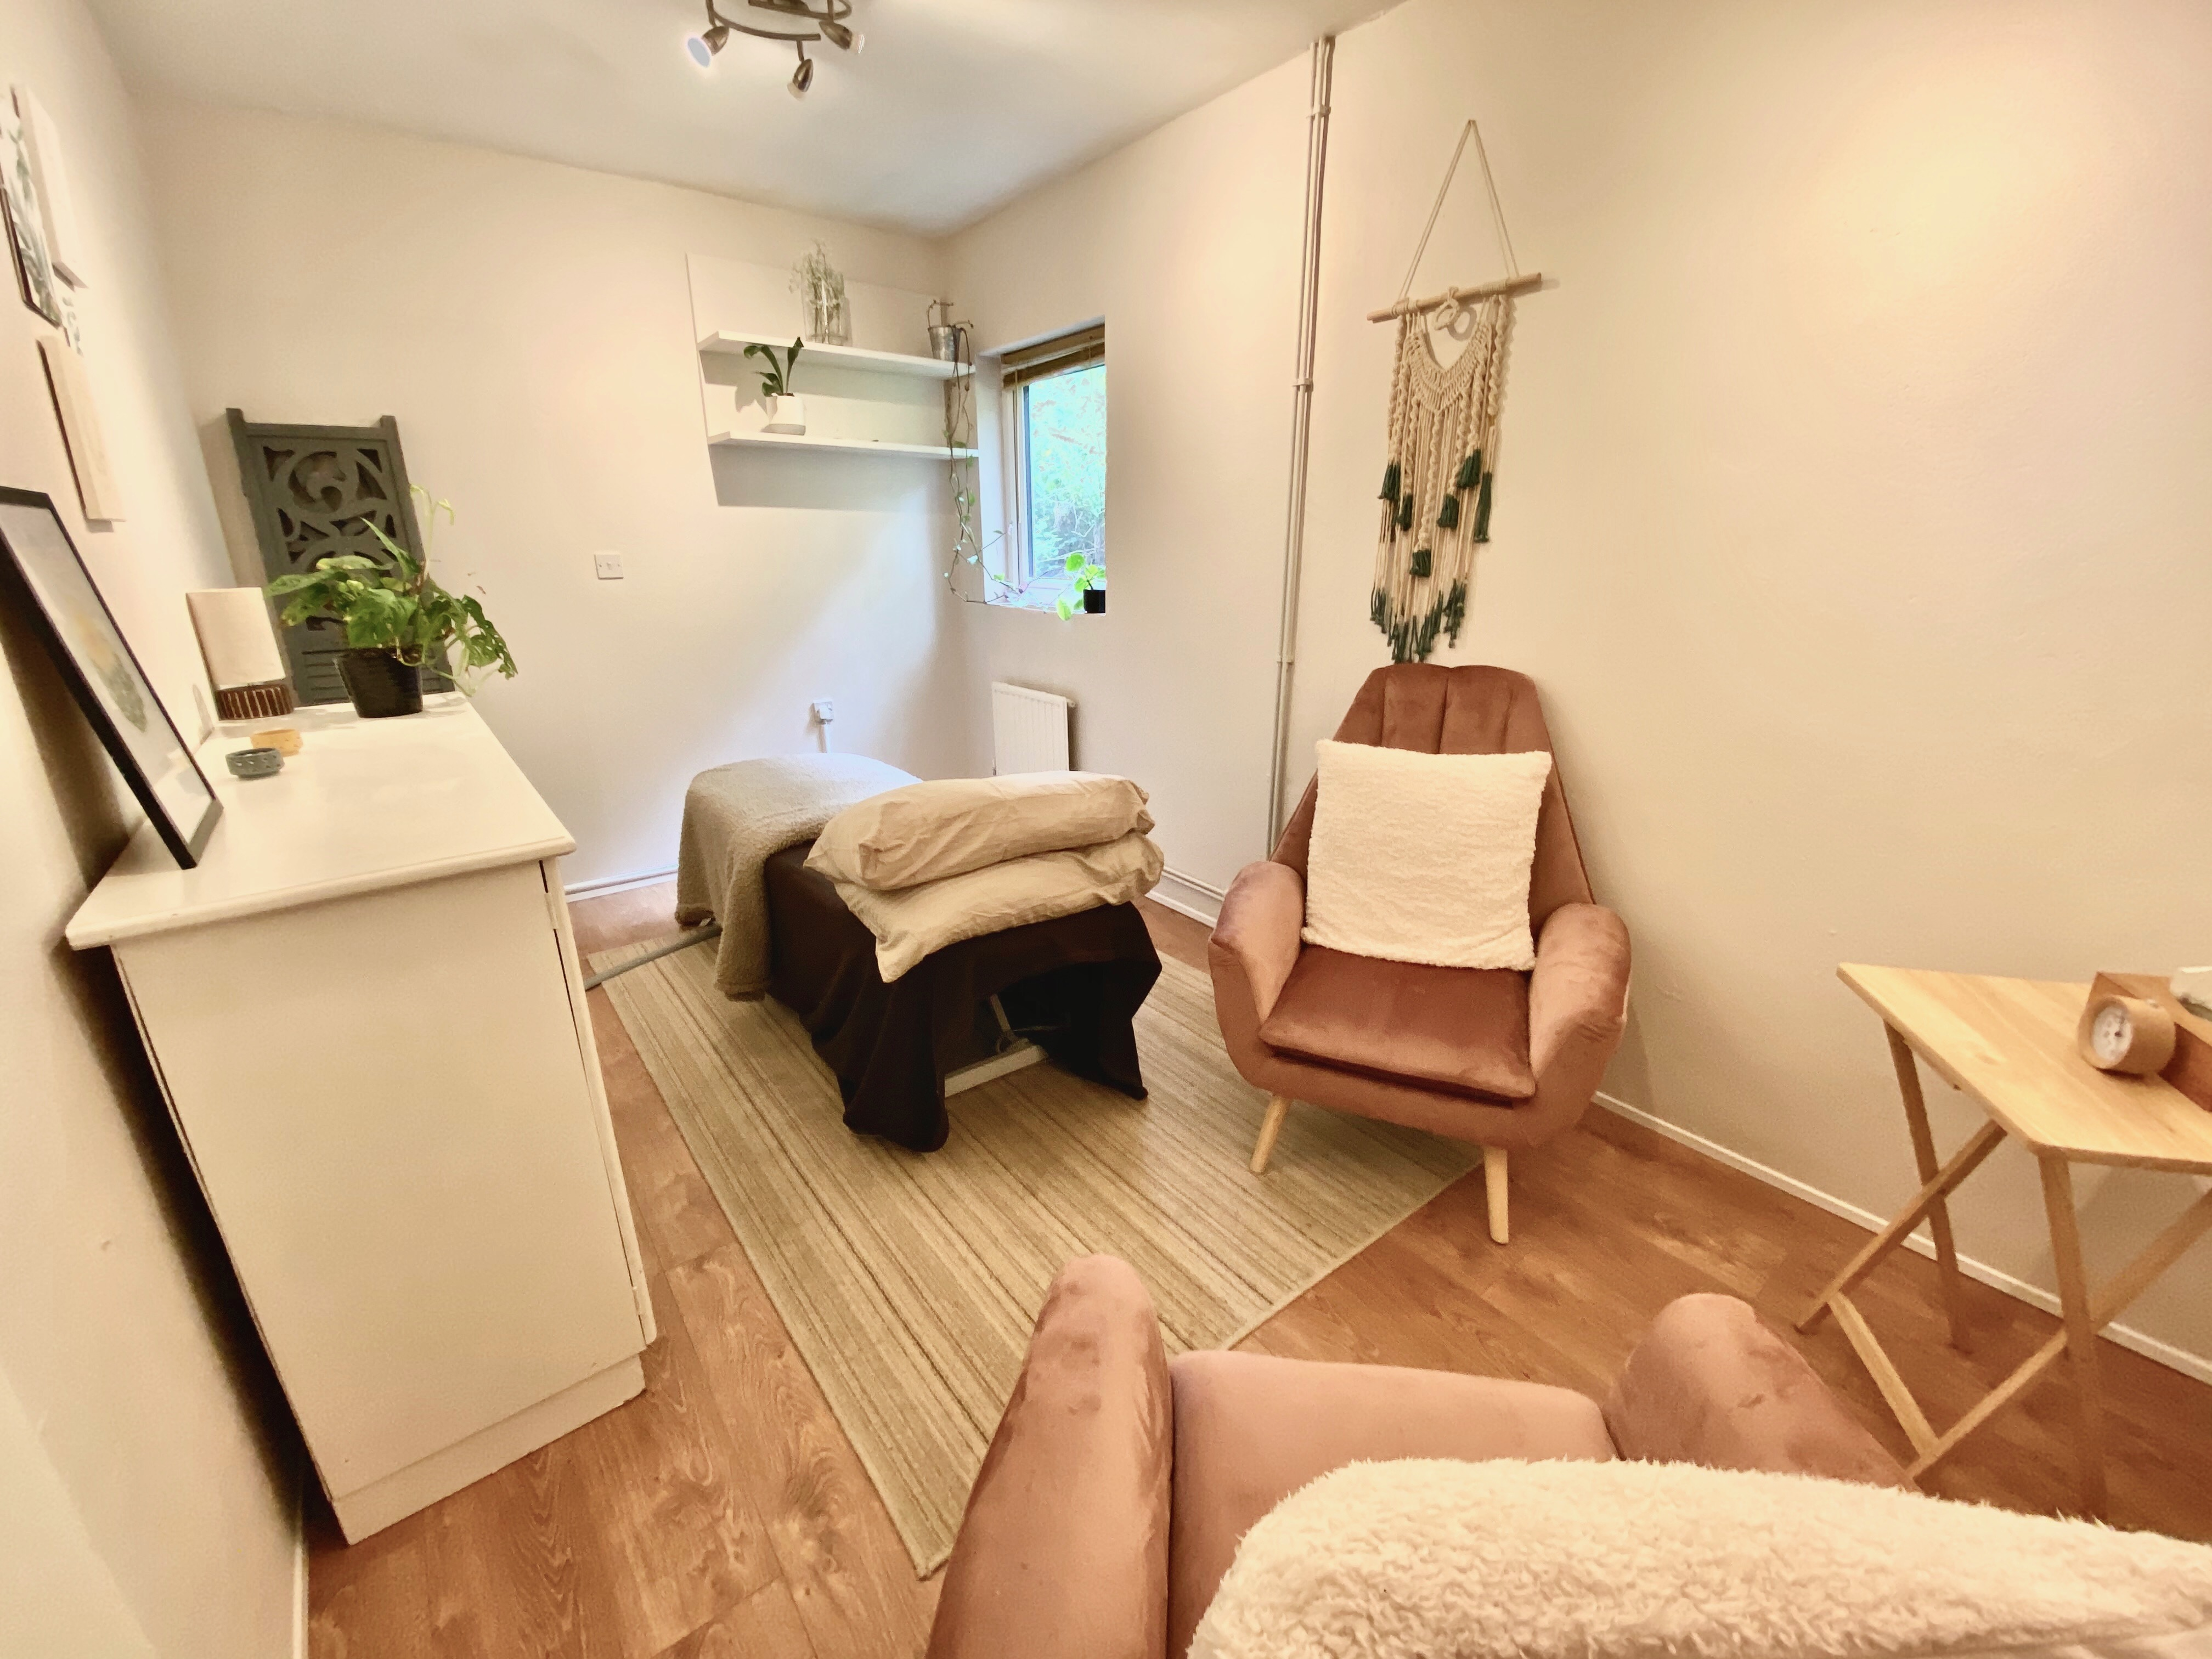 Therapy Treatment room